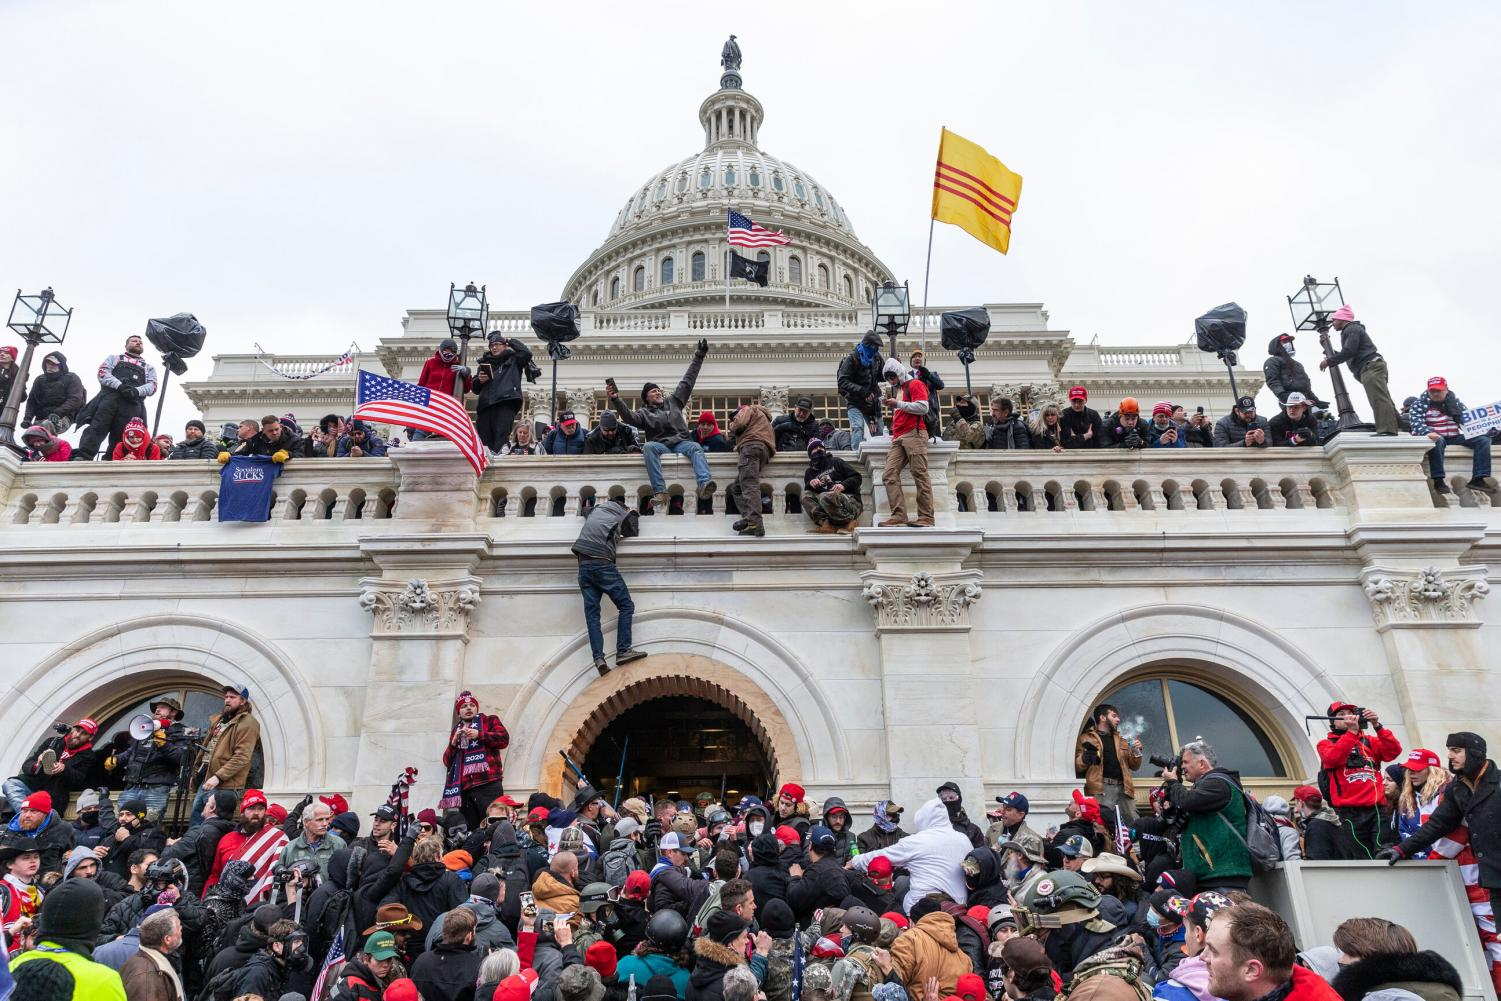 Washington, DC - January 6, 2021: Protesters seen all over Capitol building where pro-Trump supporters riot and breached the Capitol.